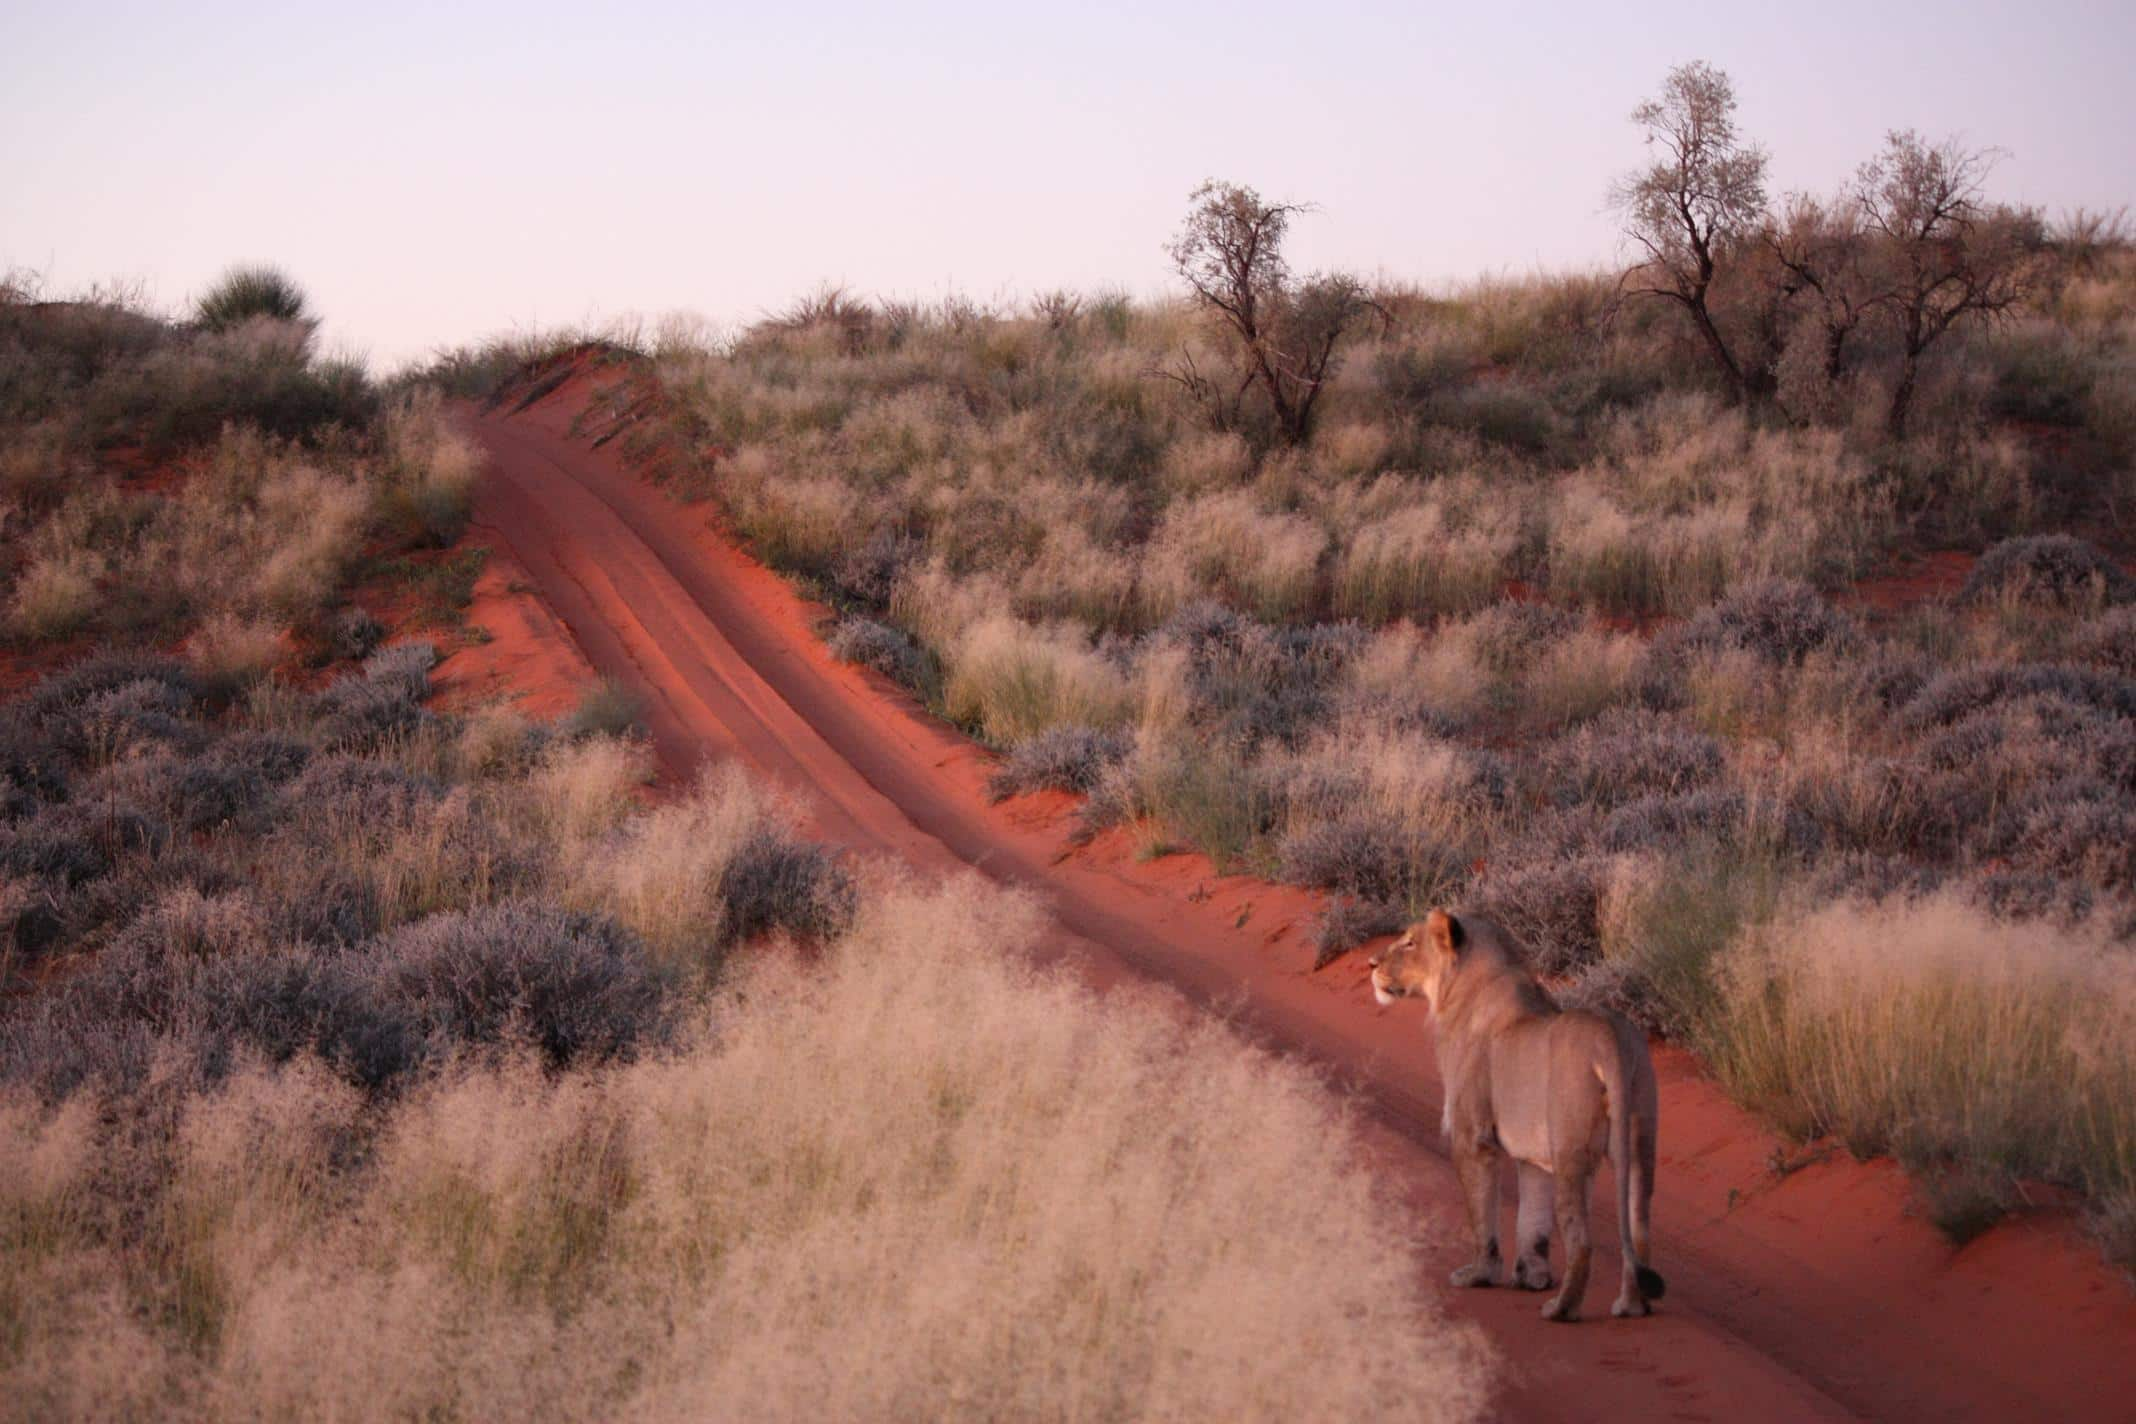 A lioness on the red Kalahari dunes of the Kgalagadi Transfrontier Park.